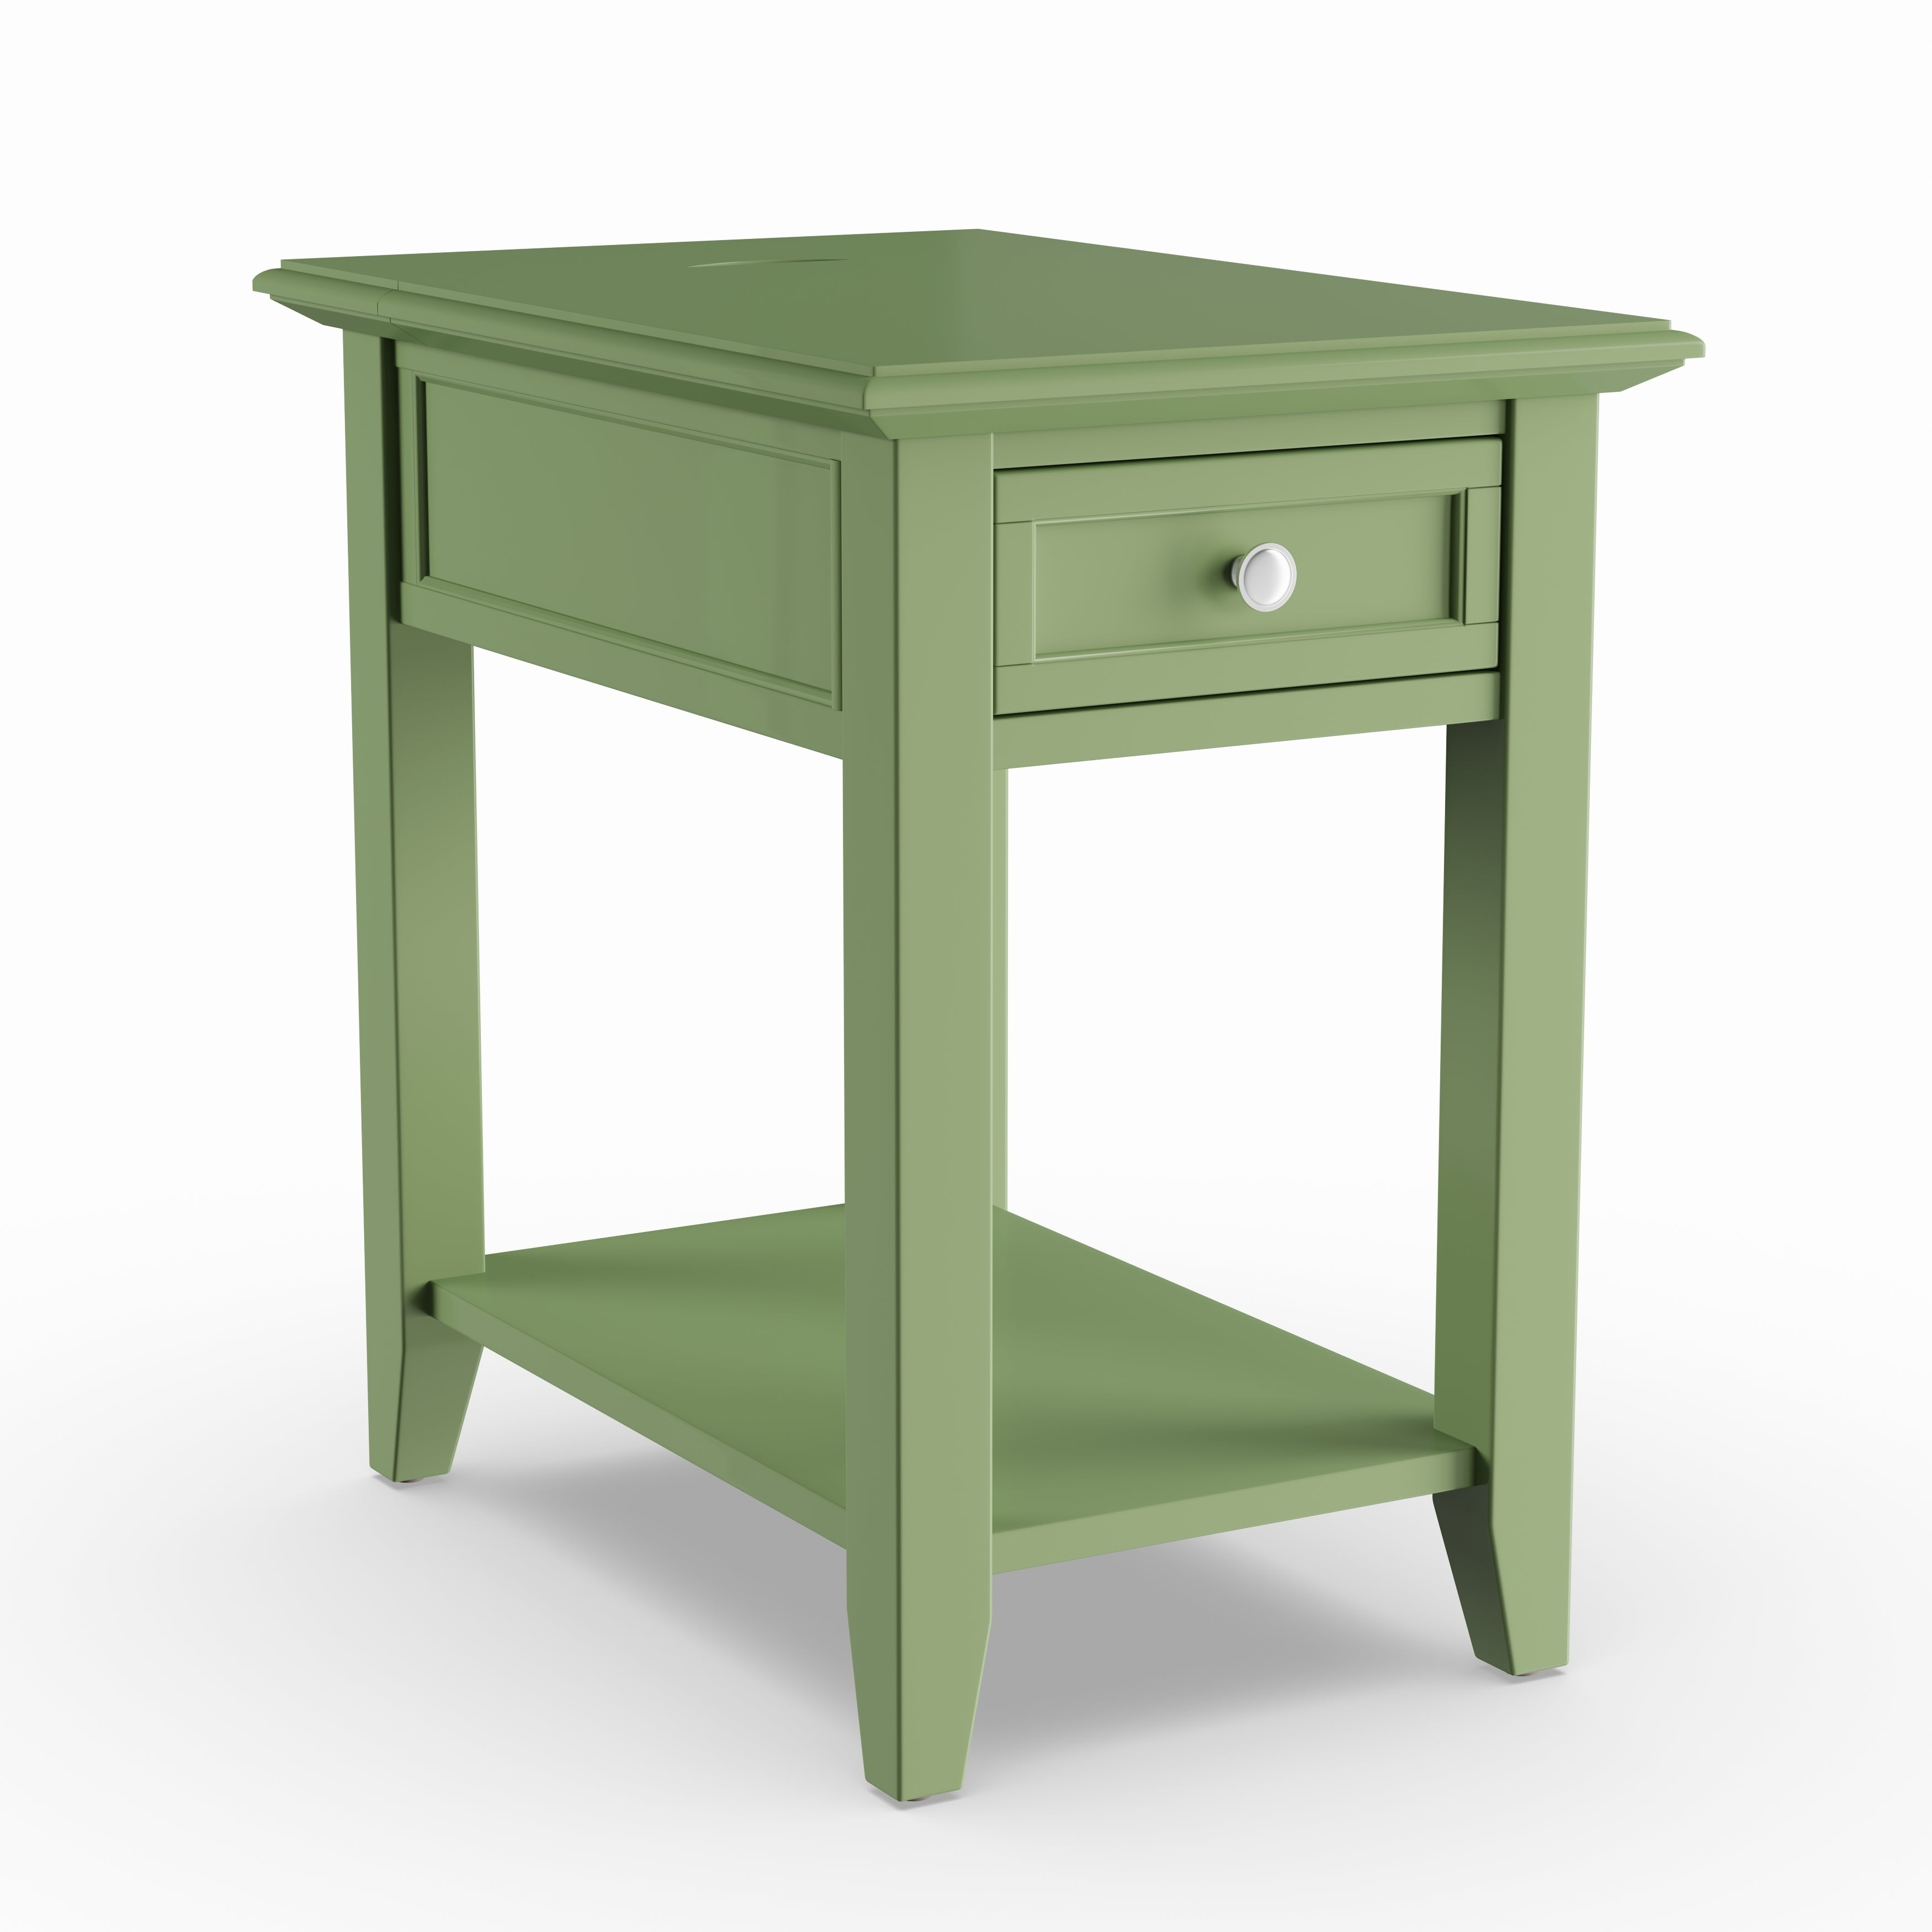 Green Coffee Console Sofa End Tables Online At Our Best Living Room Furniture Deals